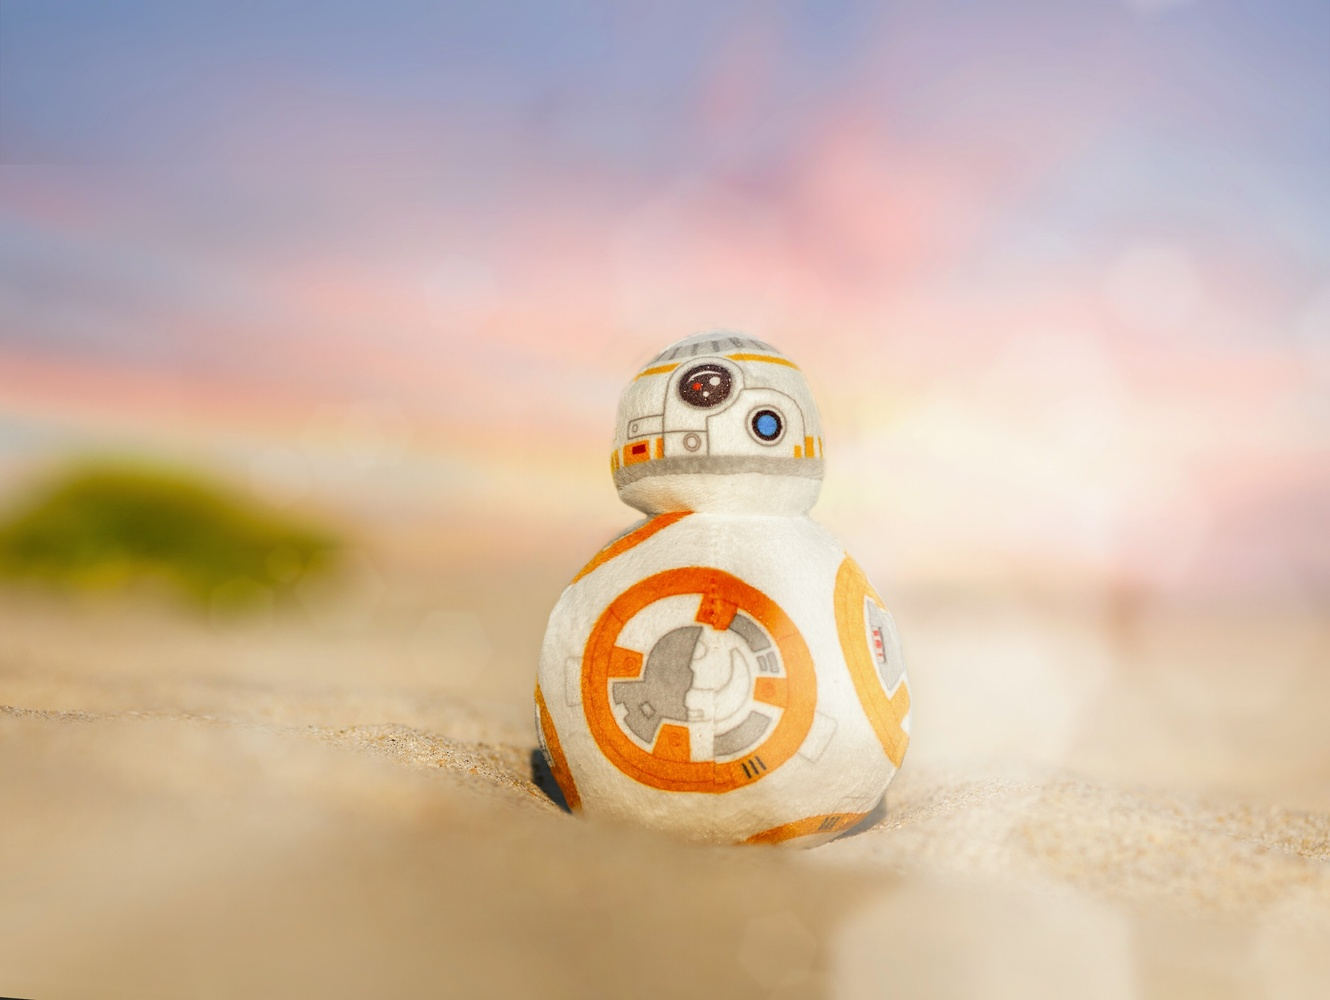 BB8 by hs in